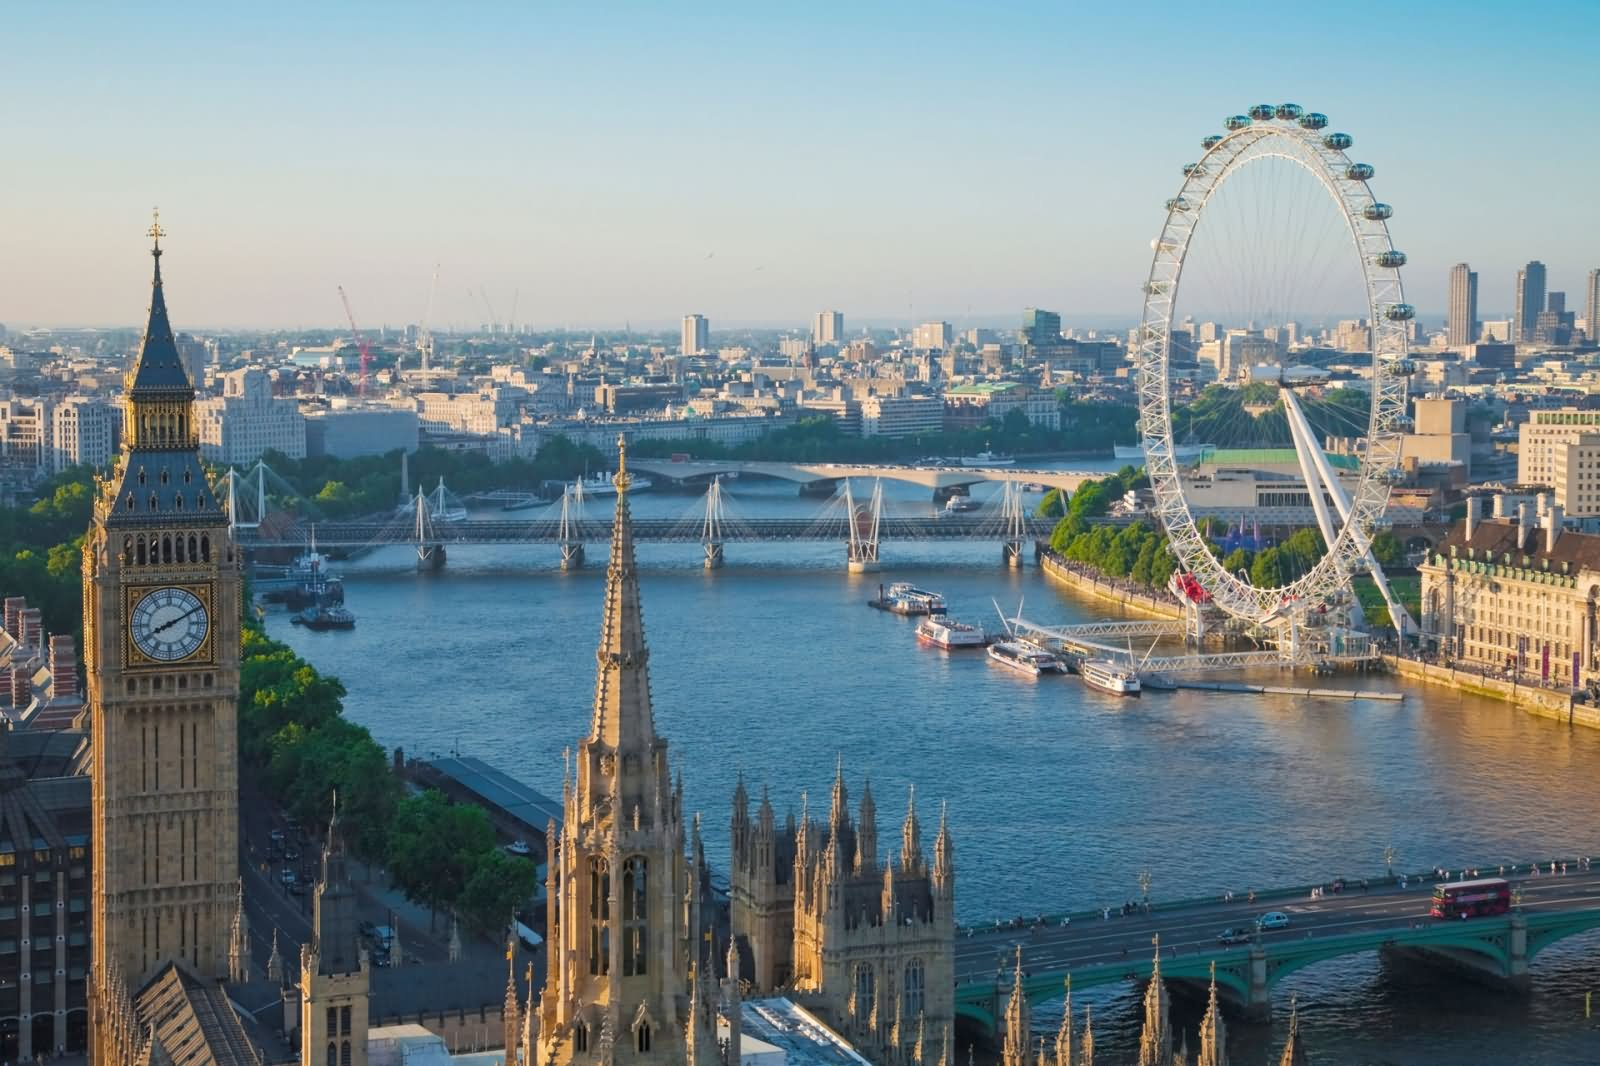 42 Most Amazing London Eye Pictures And Photos